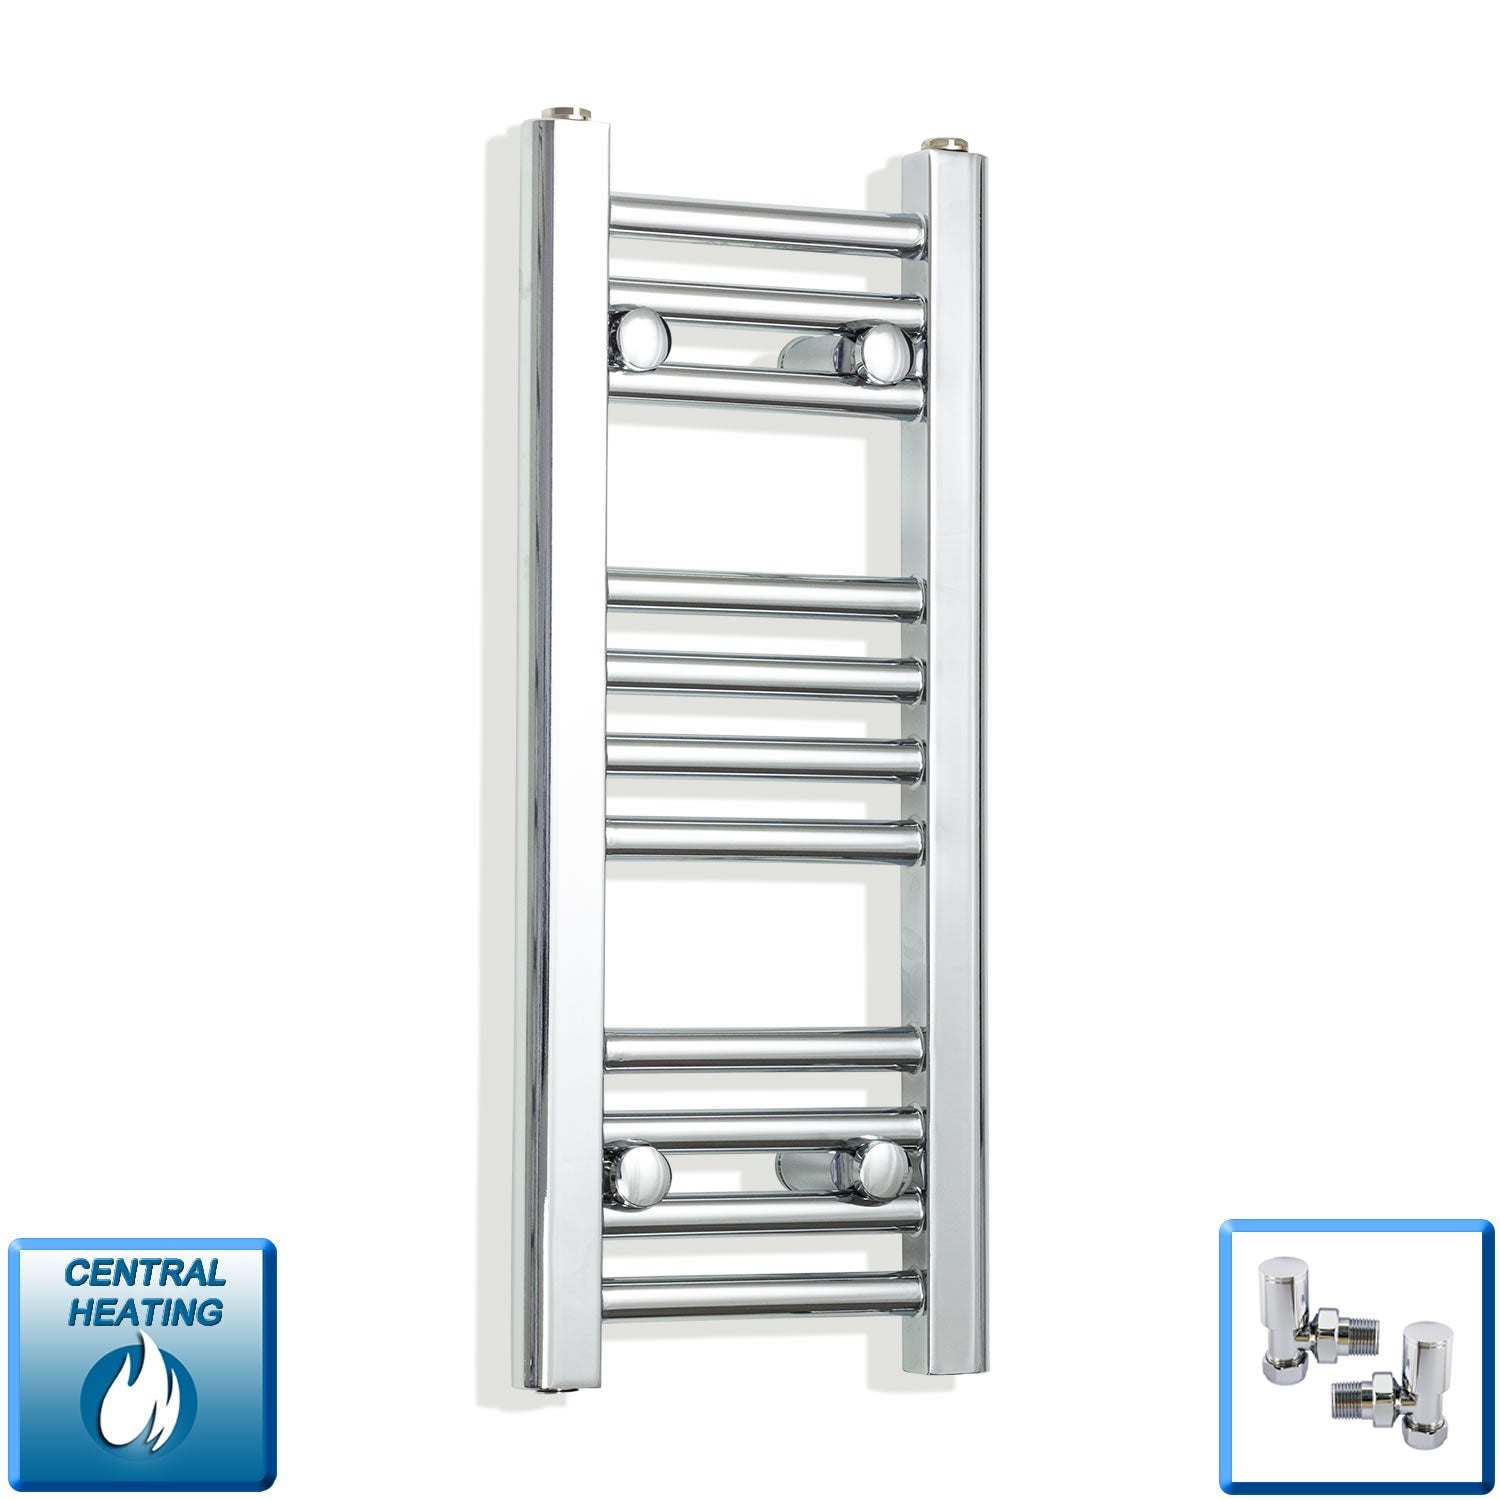 200mm Wide 600mm High Flat Chrome Heated Towel Rail Radiator,With Angled Valve